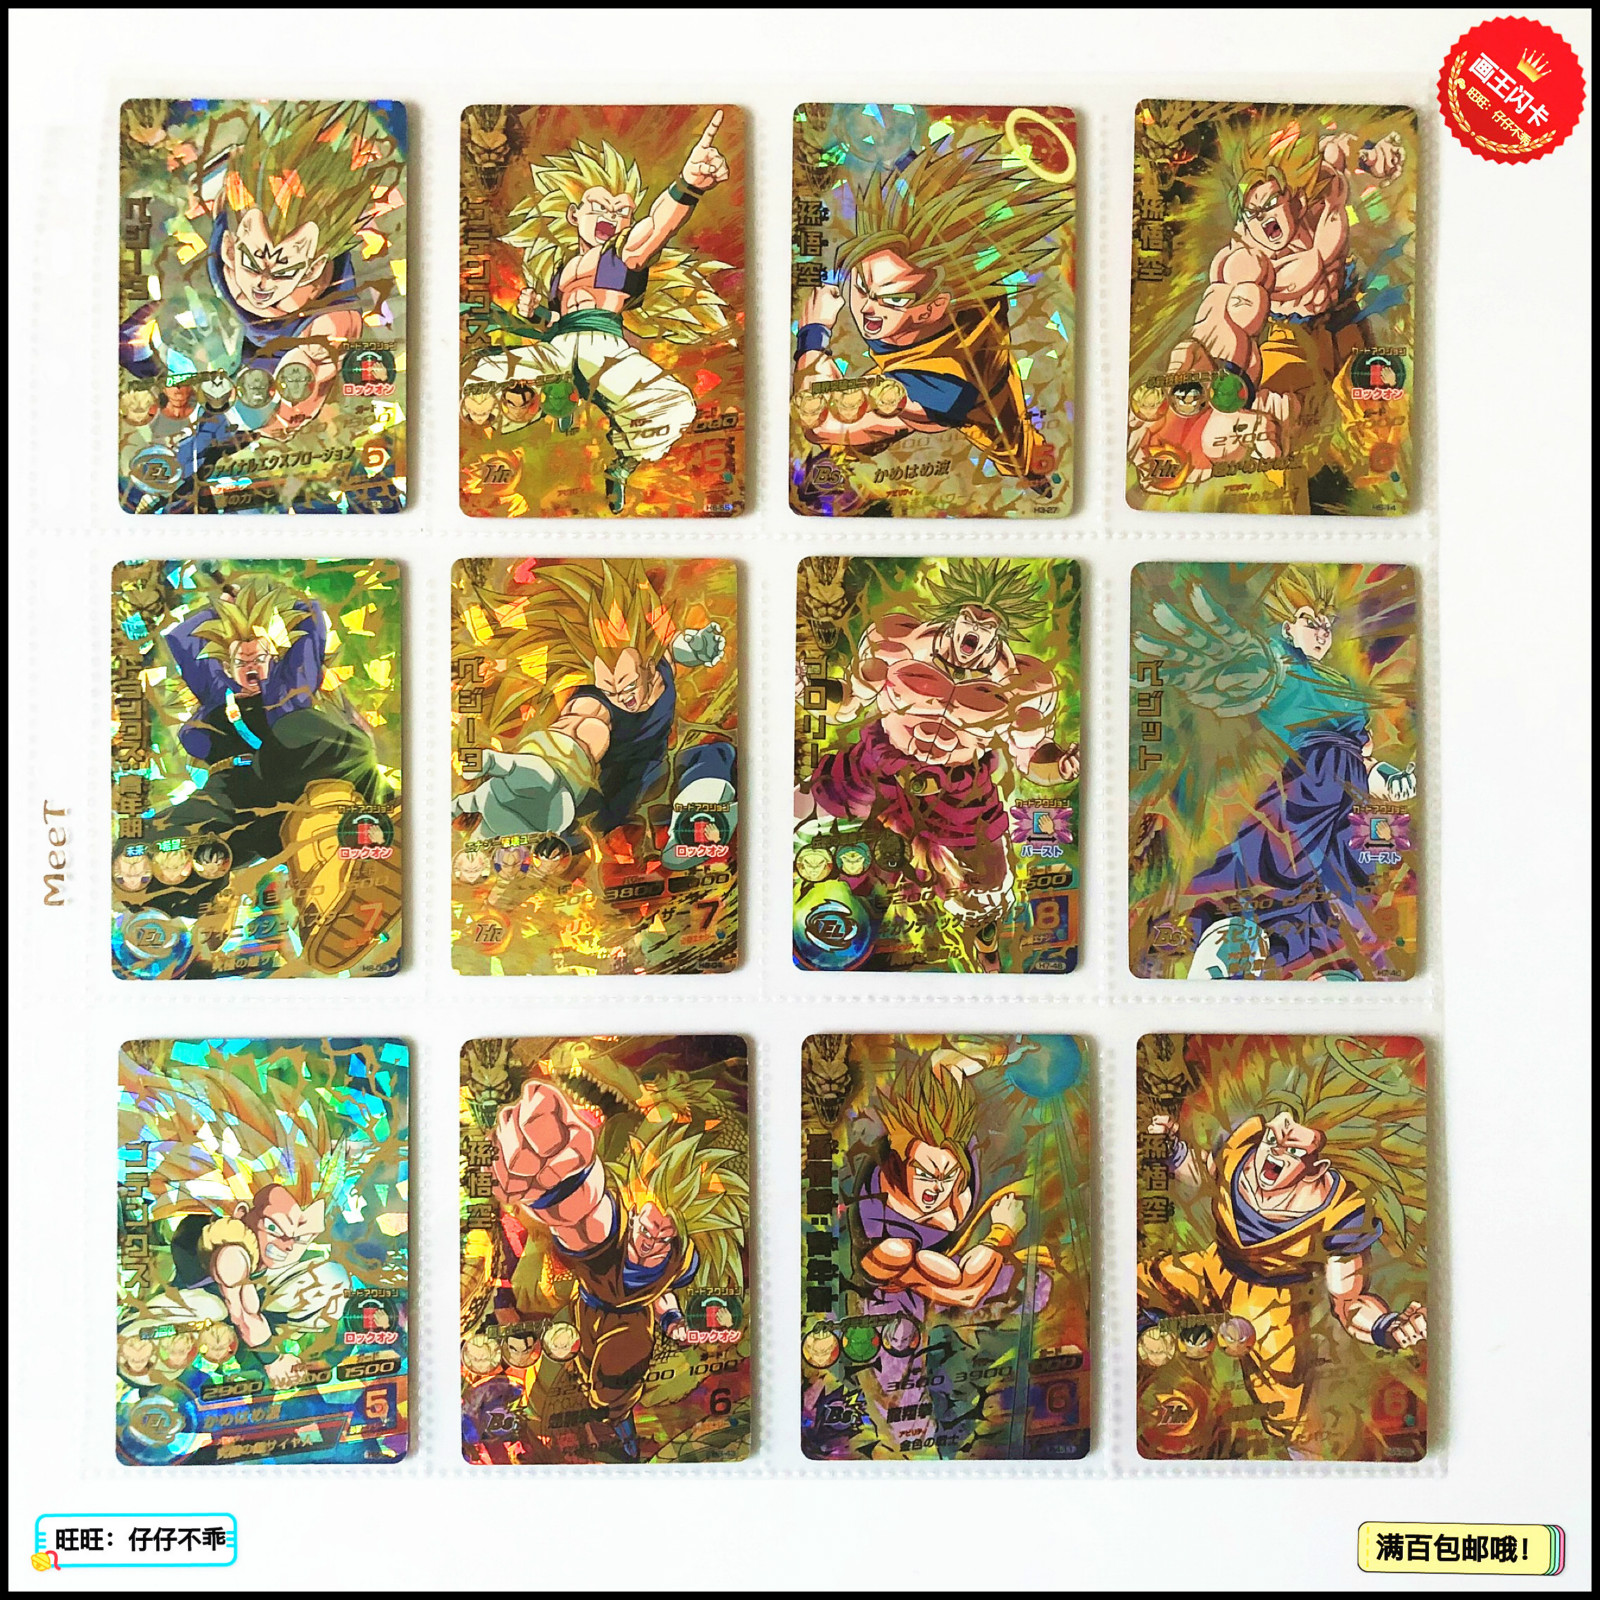 Japan Original Dragon Ball Hero Card 4 Stars UR Broli Goku Toys Hobbies Collectibles Game Collection Anime Cards